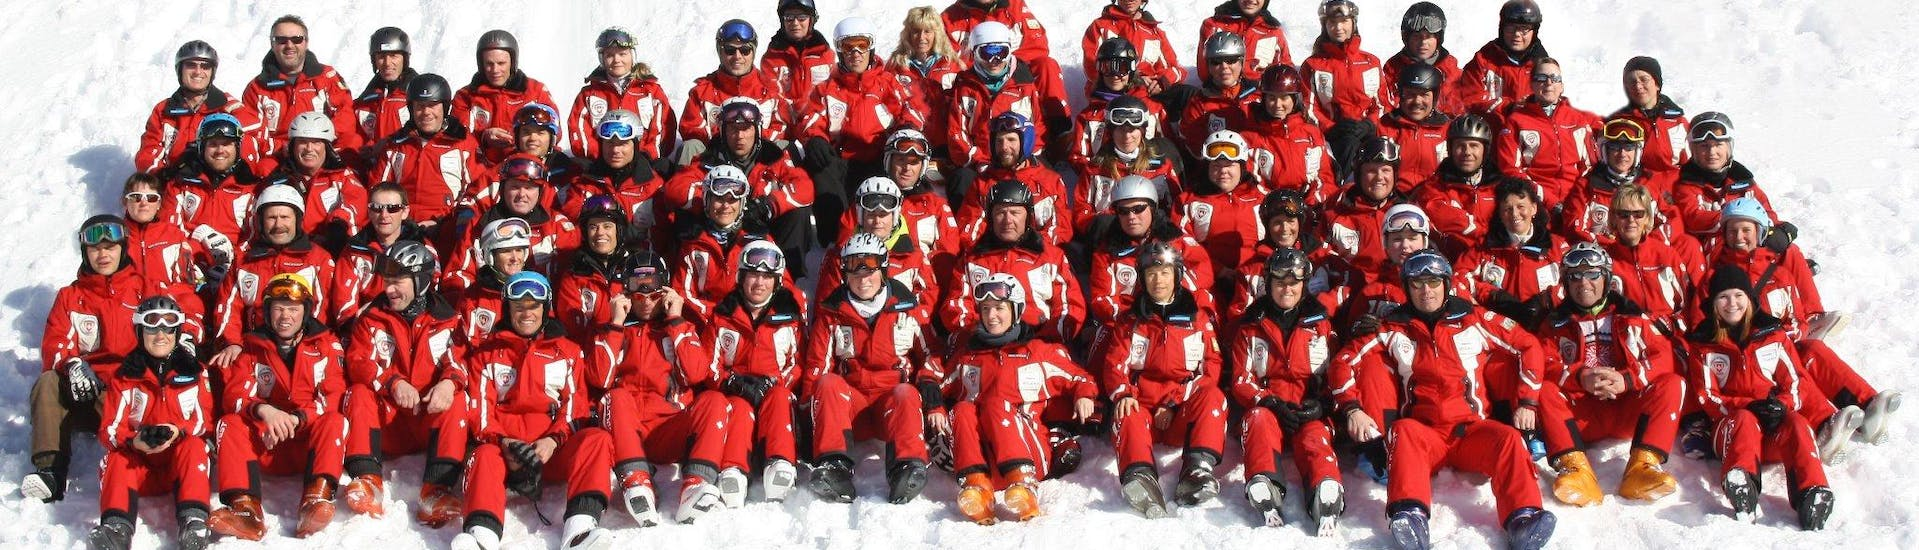 The whole team of ski and snowboard instructors of Swiss Ski School Wildhaus is taking a group picture together.